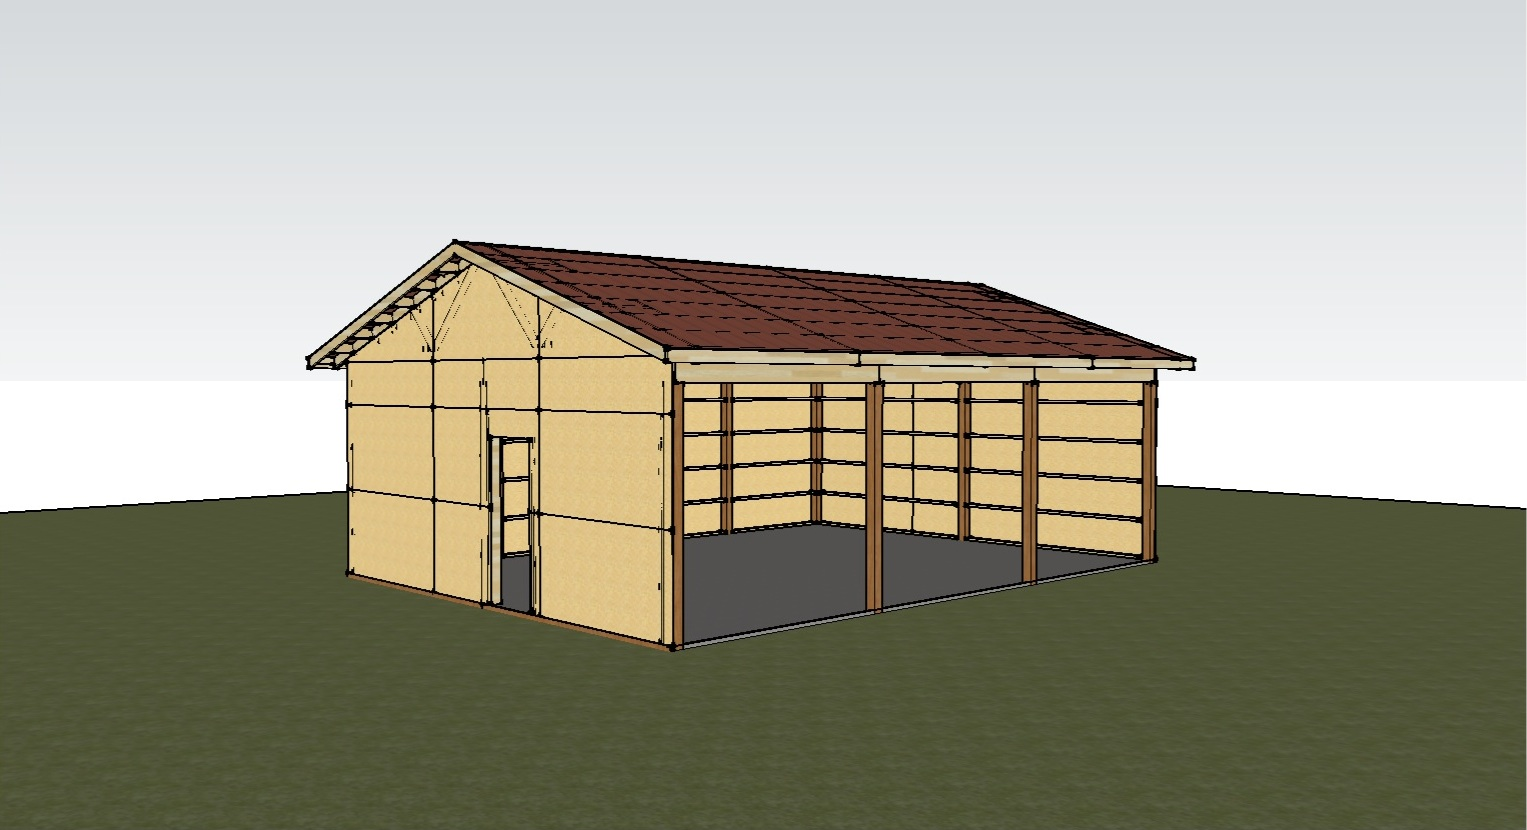 Pole barn plans and materials redneck diy How to build a small pole barn